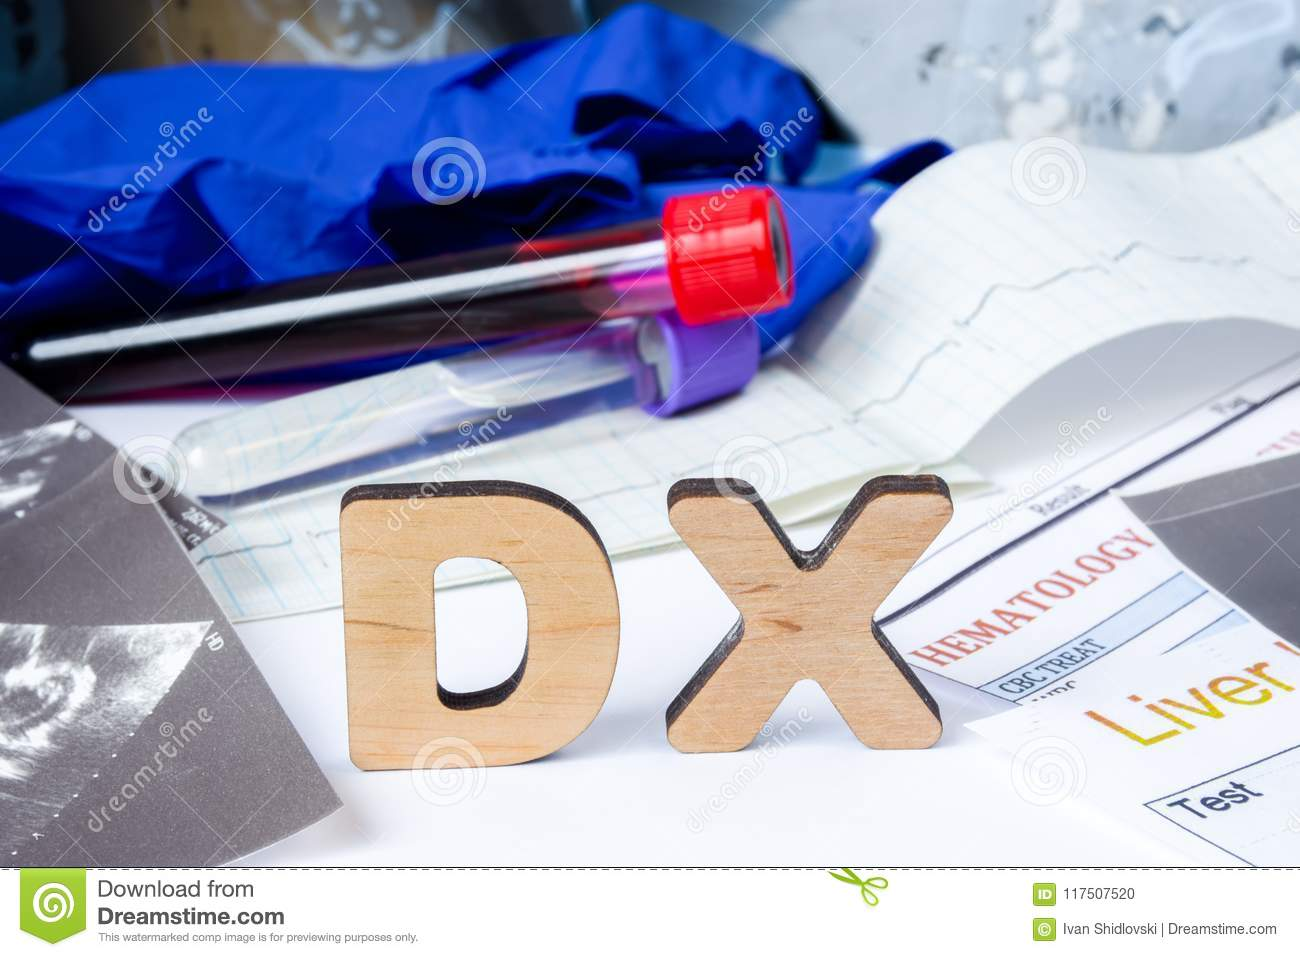 DX Acronym or abbreviation of medical diagnosis - process of determining type of disease on basis of complaints and symptoms. Lett